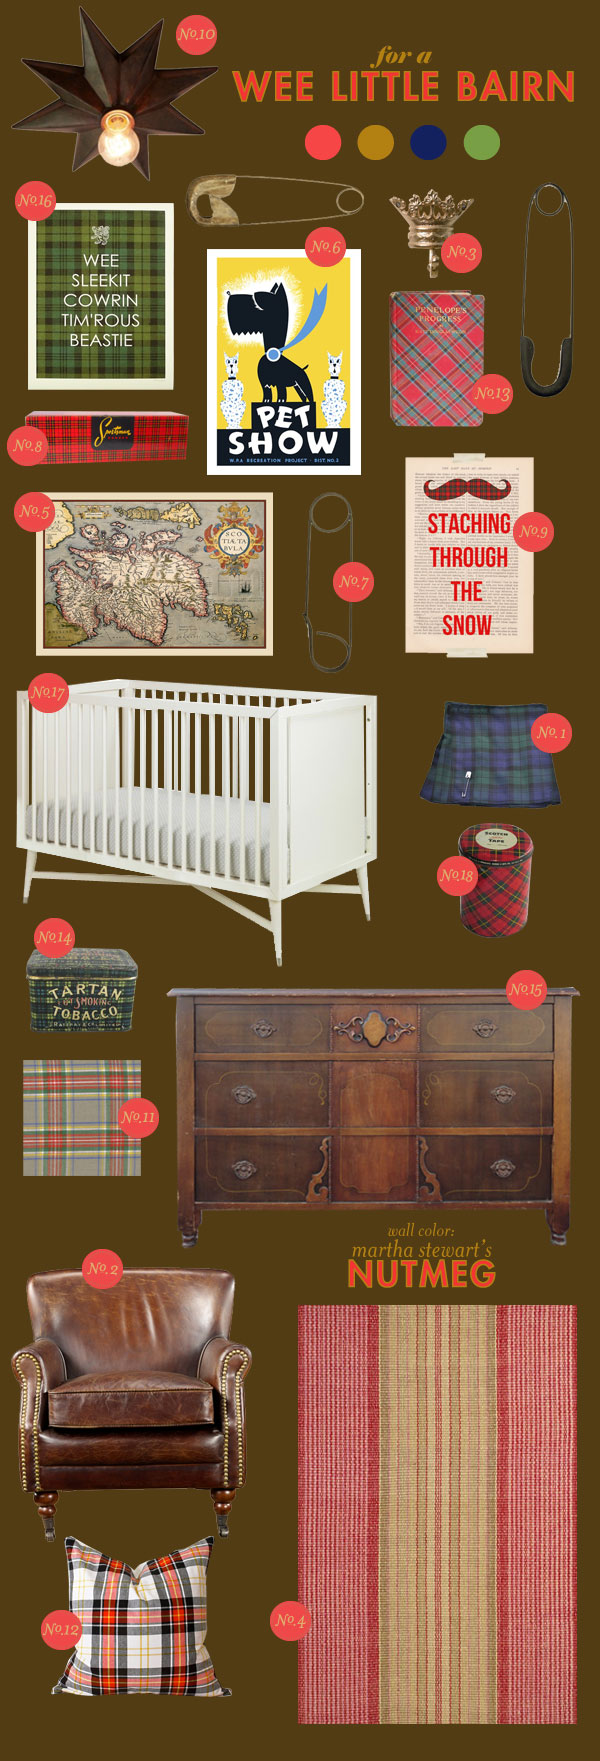 tartan scottish plaid baby room ideas